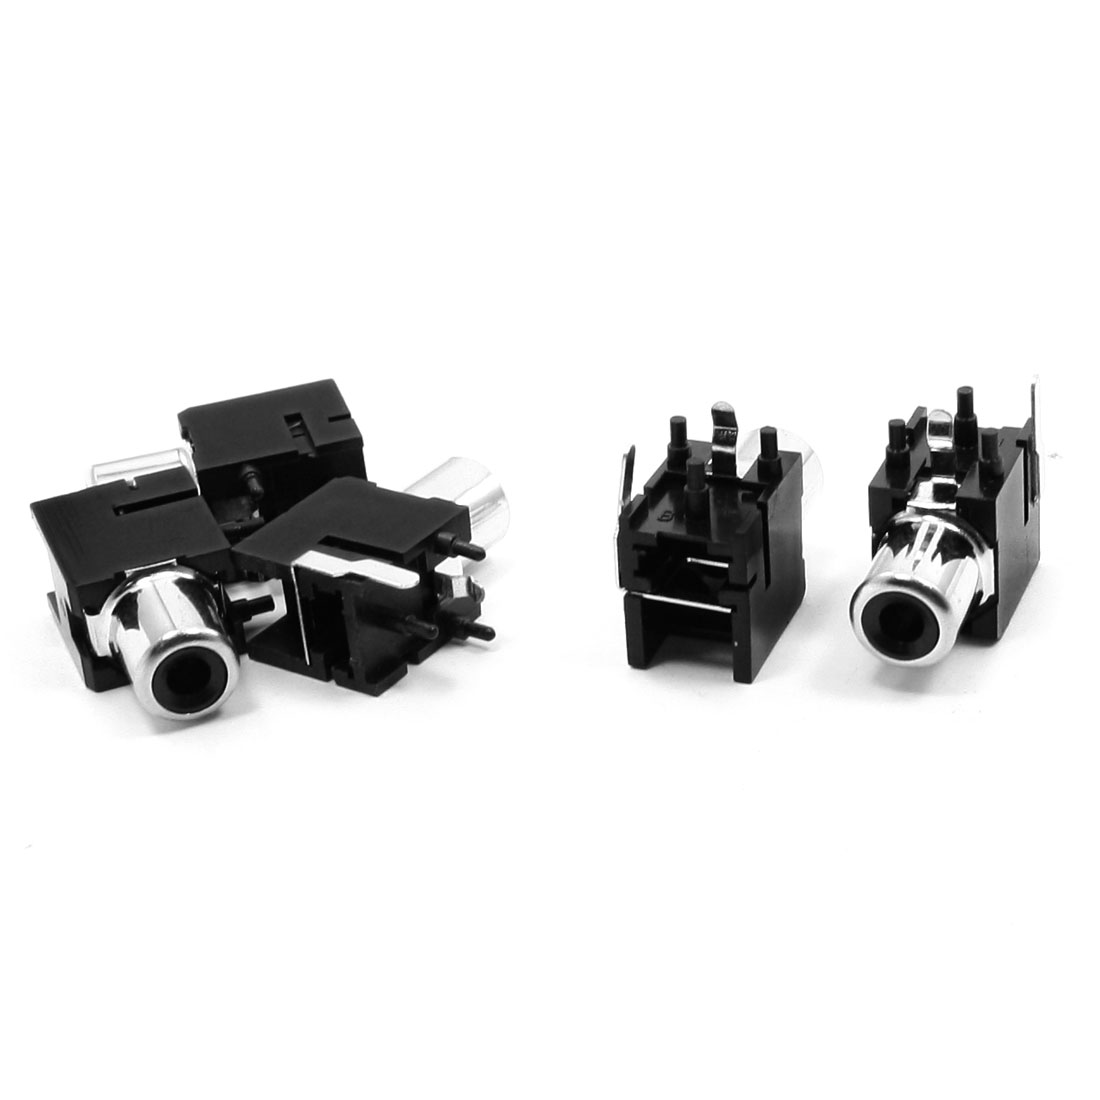 5PCS 2 Terminals RCA Mount 3.5mm Jacks Connectors Socket Black